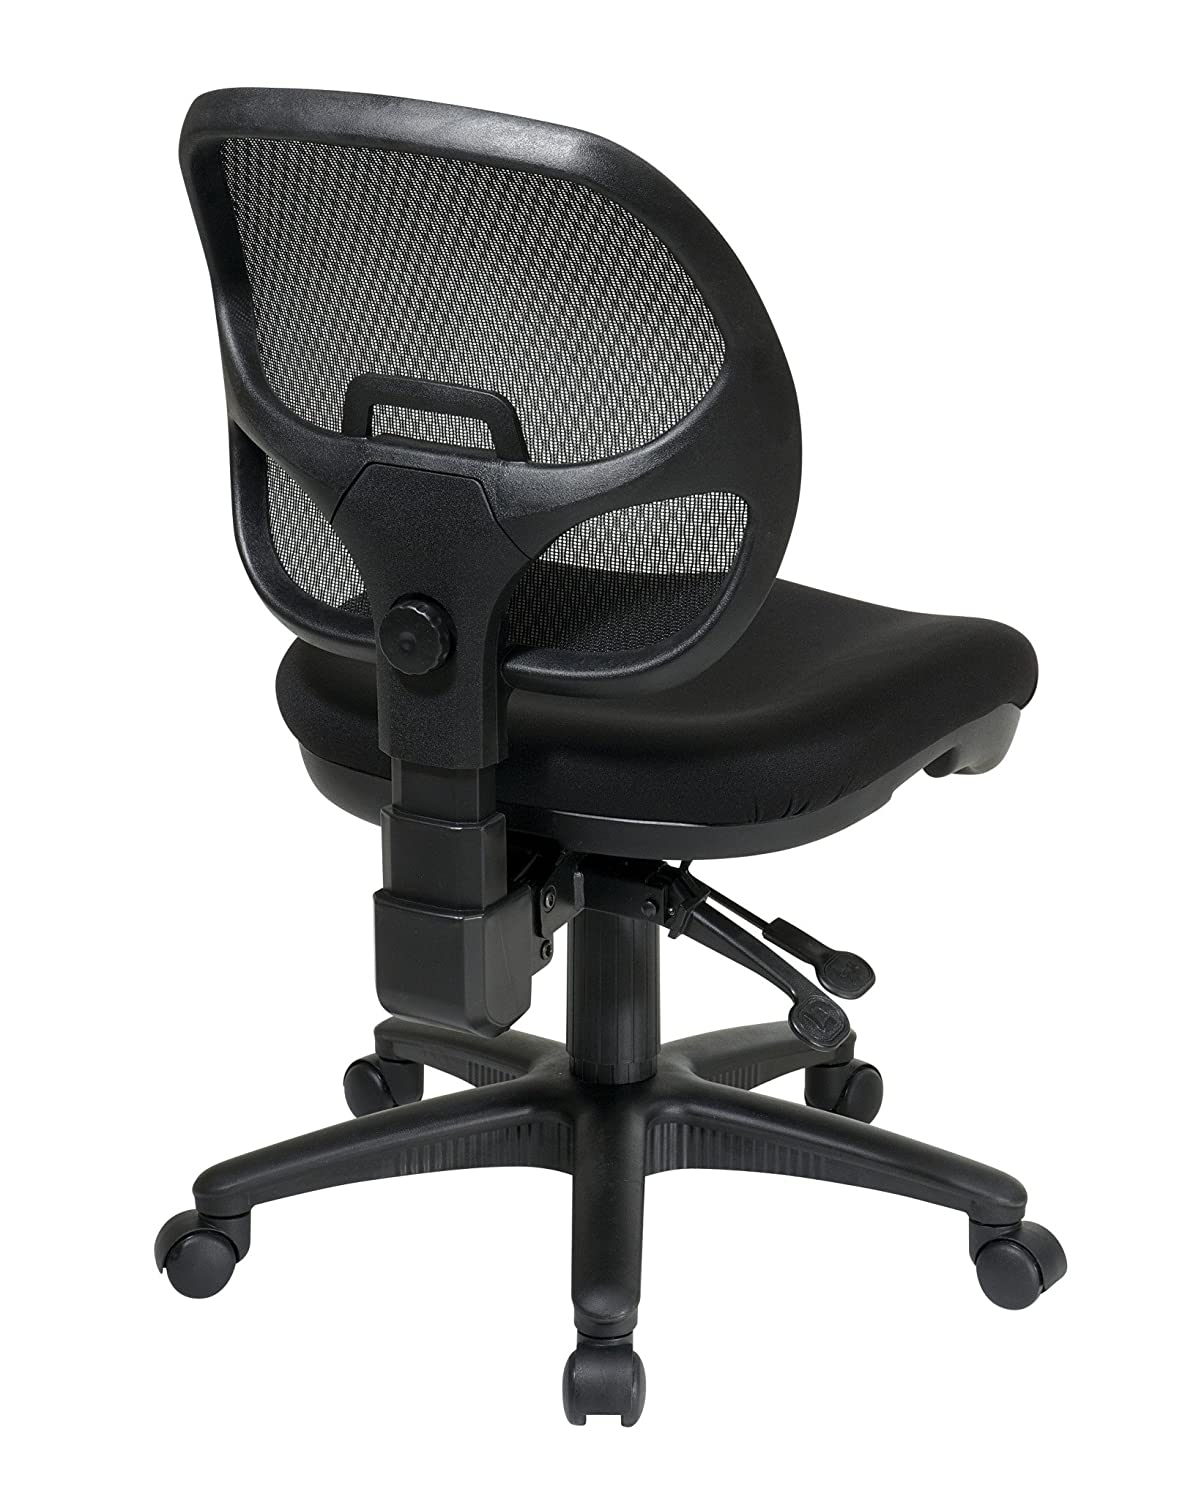 Amazon com  Office Star Breathable ProGrid Back and Padded Seat  Armless  Ergonomic Task Chair  Black  Kitchen   DiningAmazon com  Office Star Breathable ProGrid Back and Padded Seat  . Office Star Ergonomic Chair. Home Design Ideas